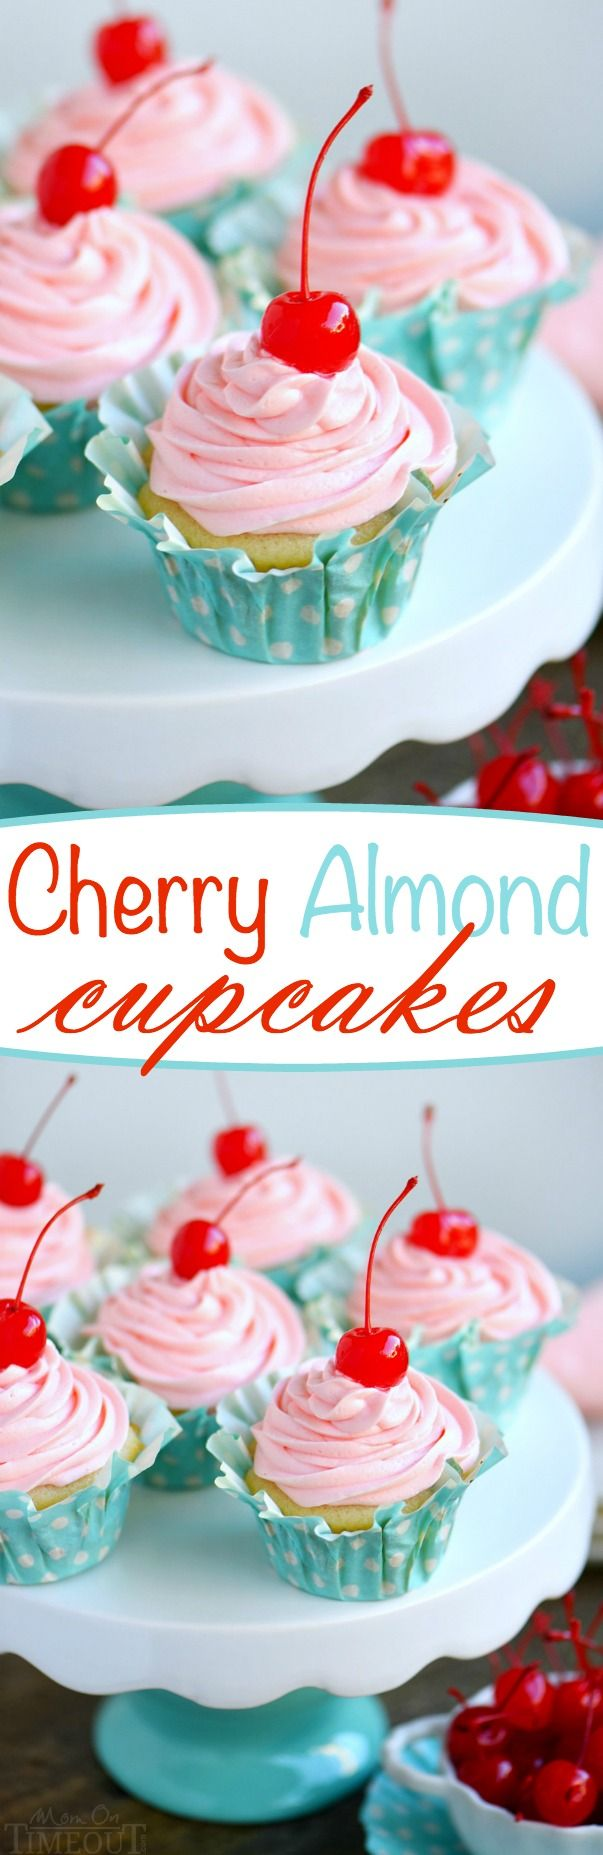 These Cherry Almond Cupcakes are so bright and festive - they're hard to resist! A beautiful almond cupcake, made from scratch, is topped with a cherry almond frosting that is just delightful! Topped with a cherry, these cupcakes are party-ready! // Mom On Timeout: